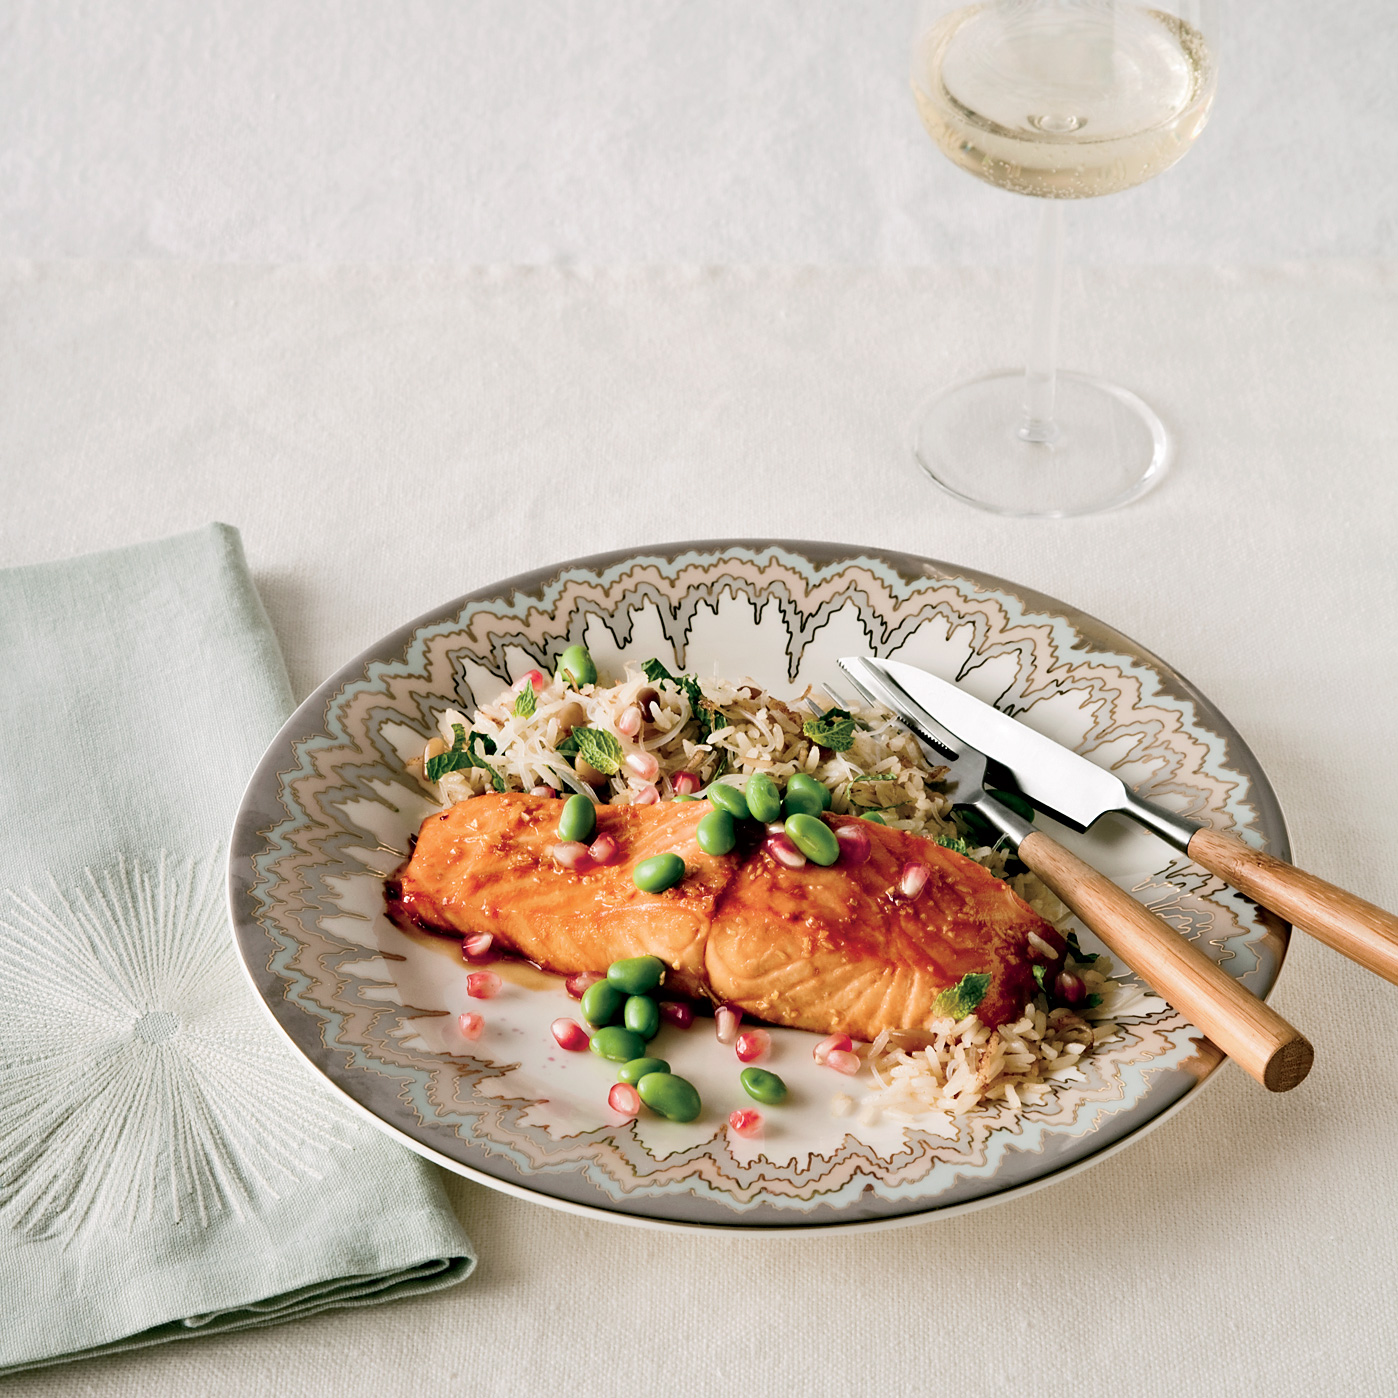 How to Eat a Pomegranate: Pomegranate-Glazed Salmon with Armenian Rice